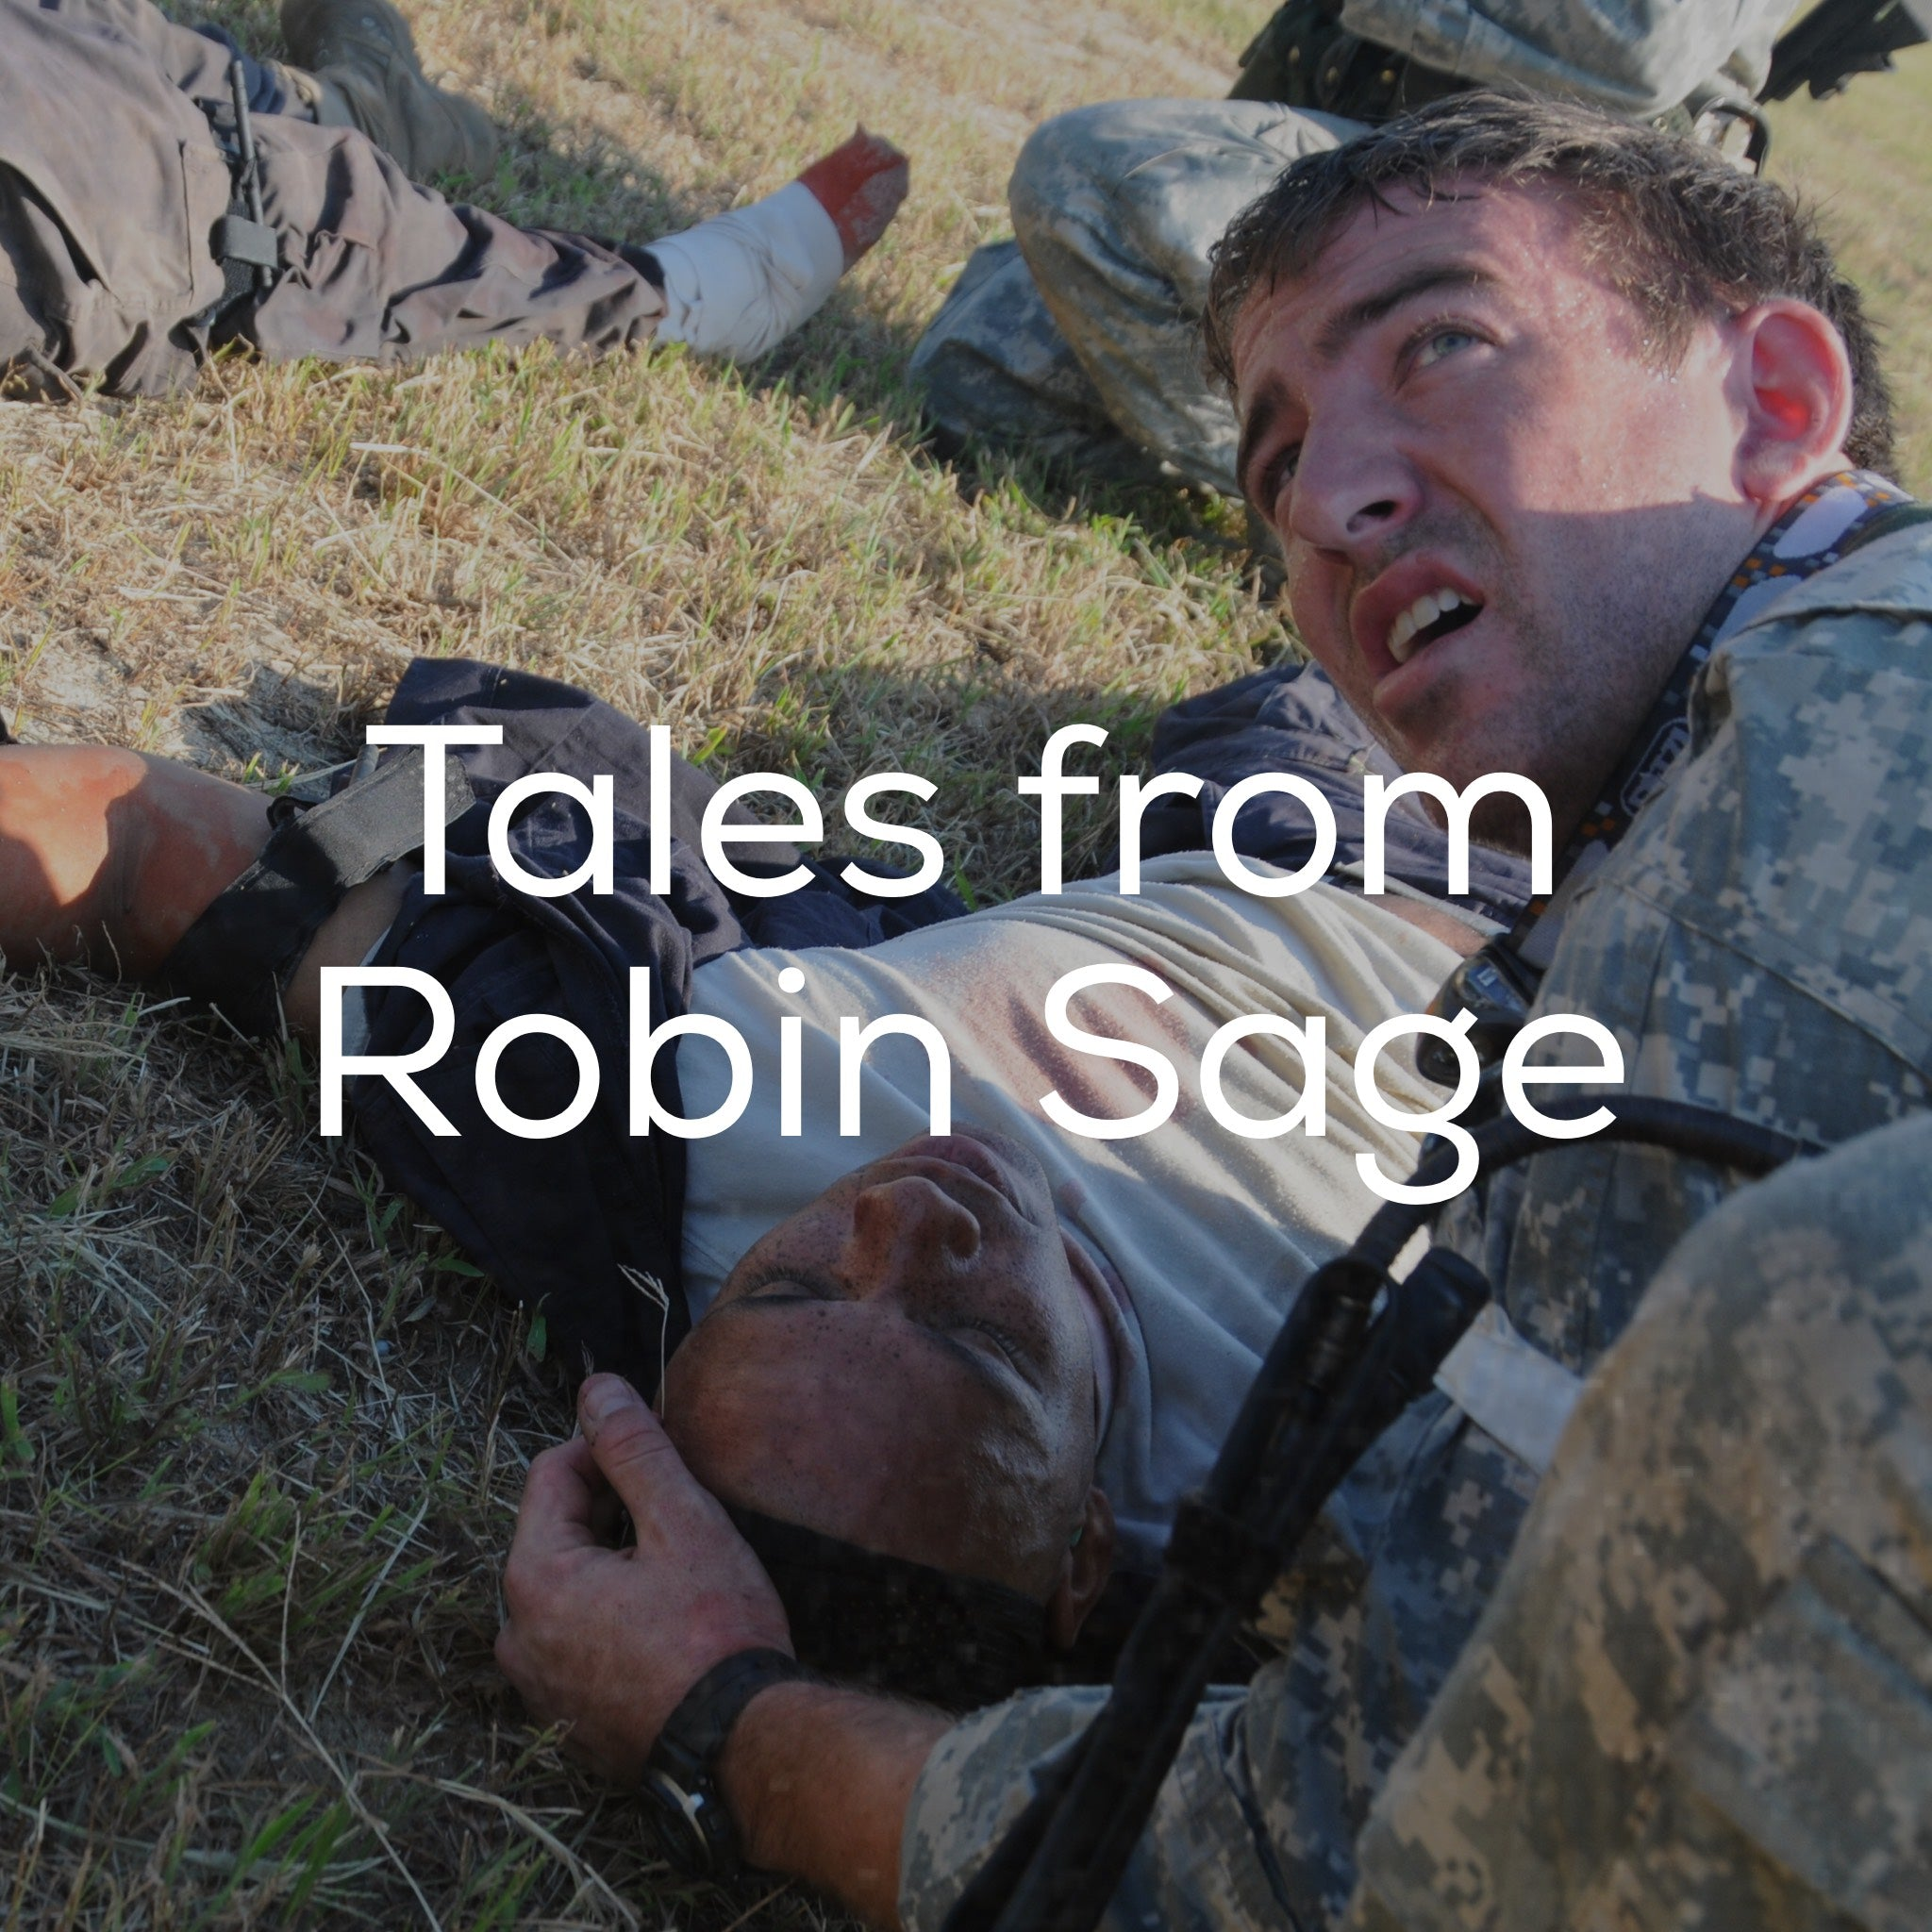 Tales from Robin Sage